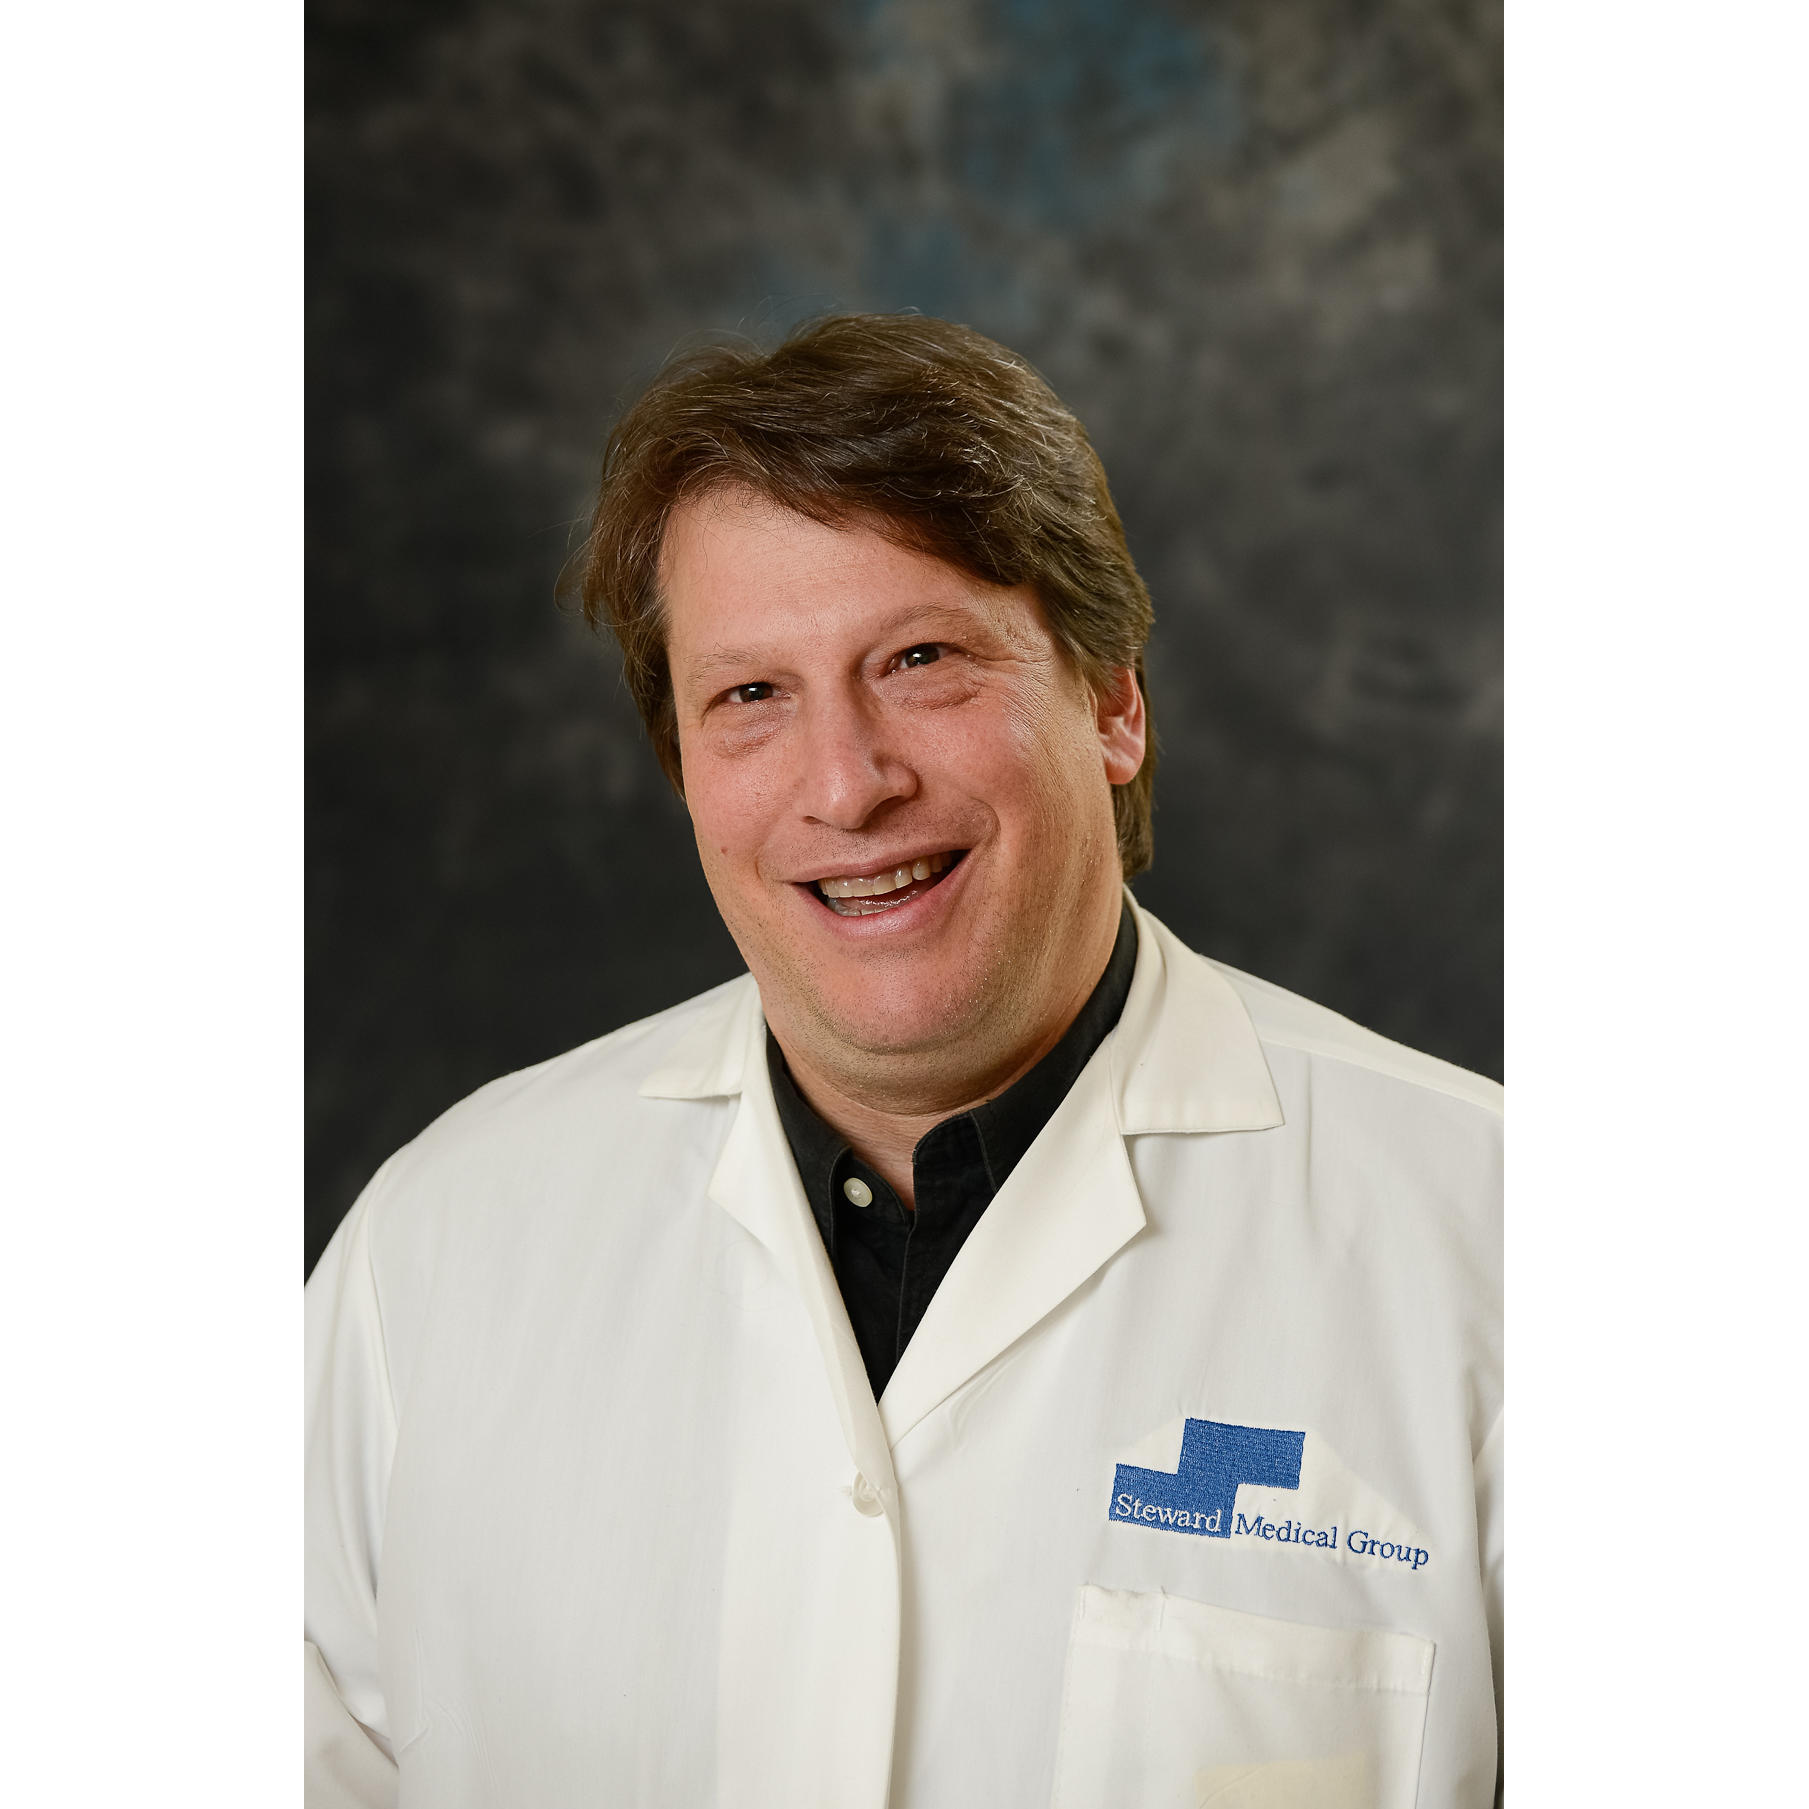 Howard Kesselman, MD